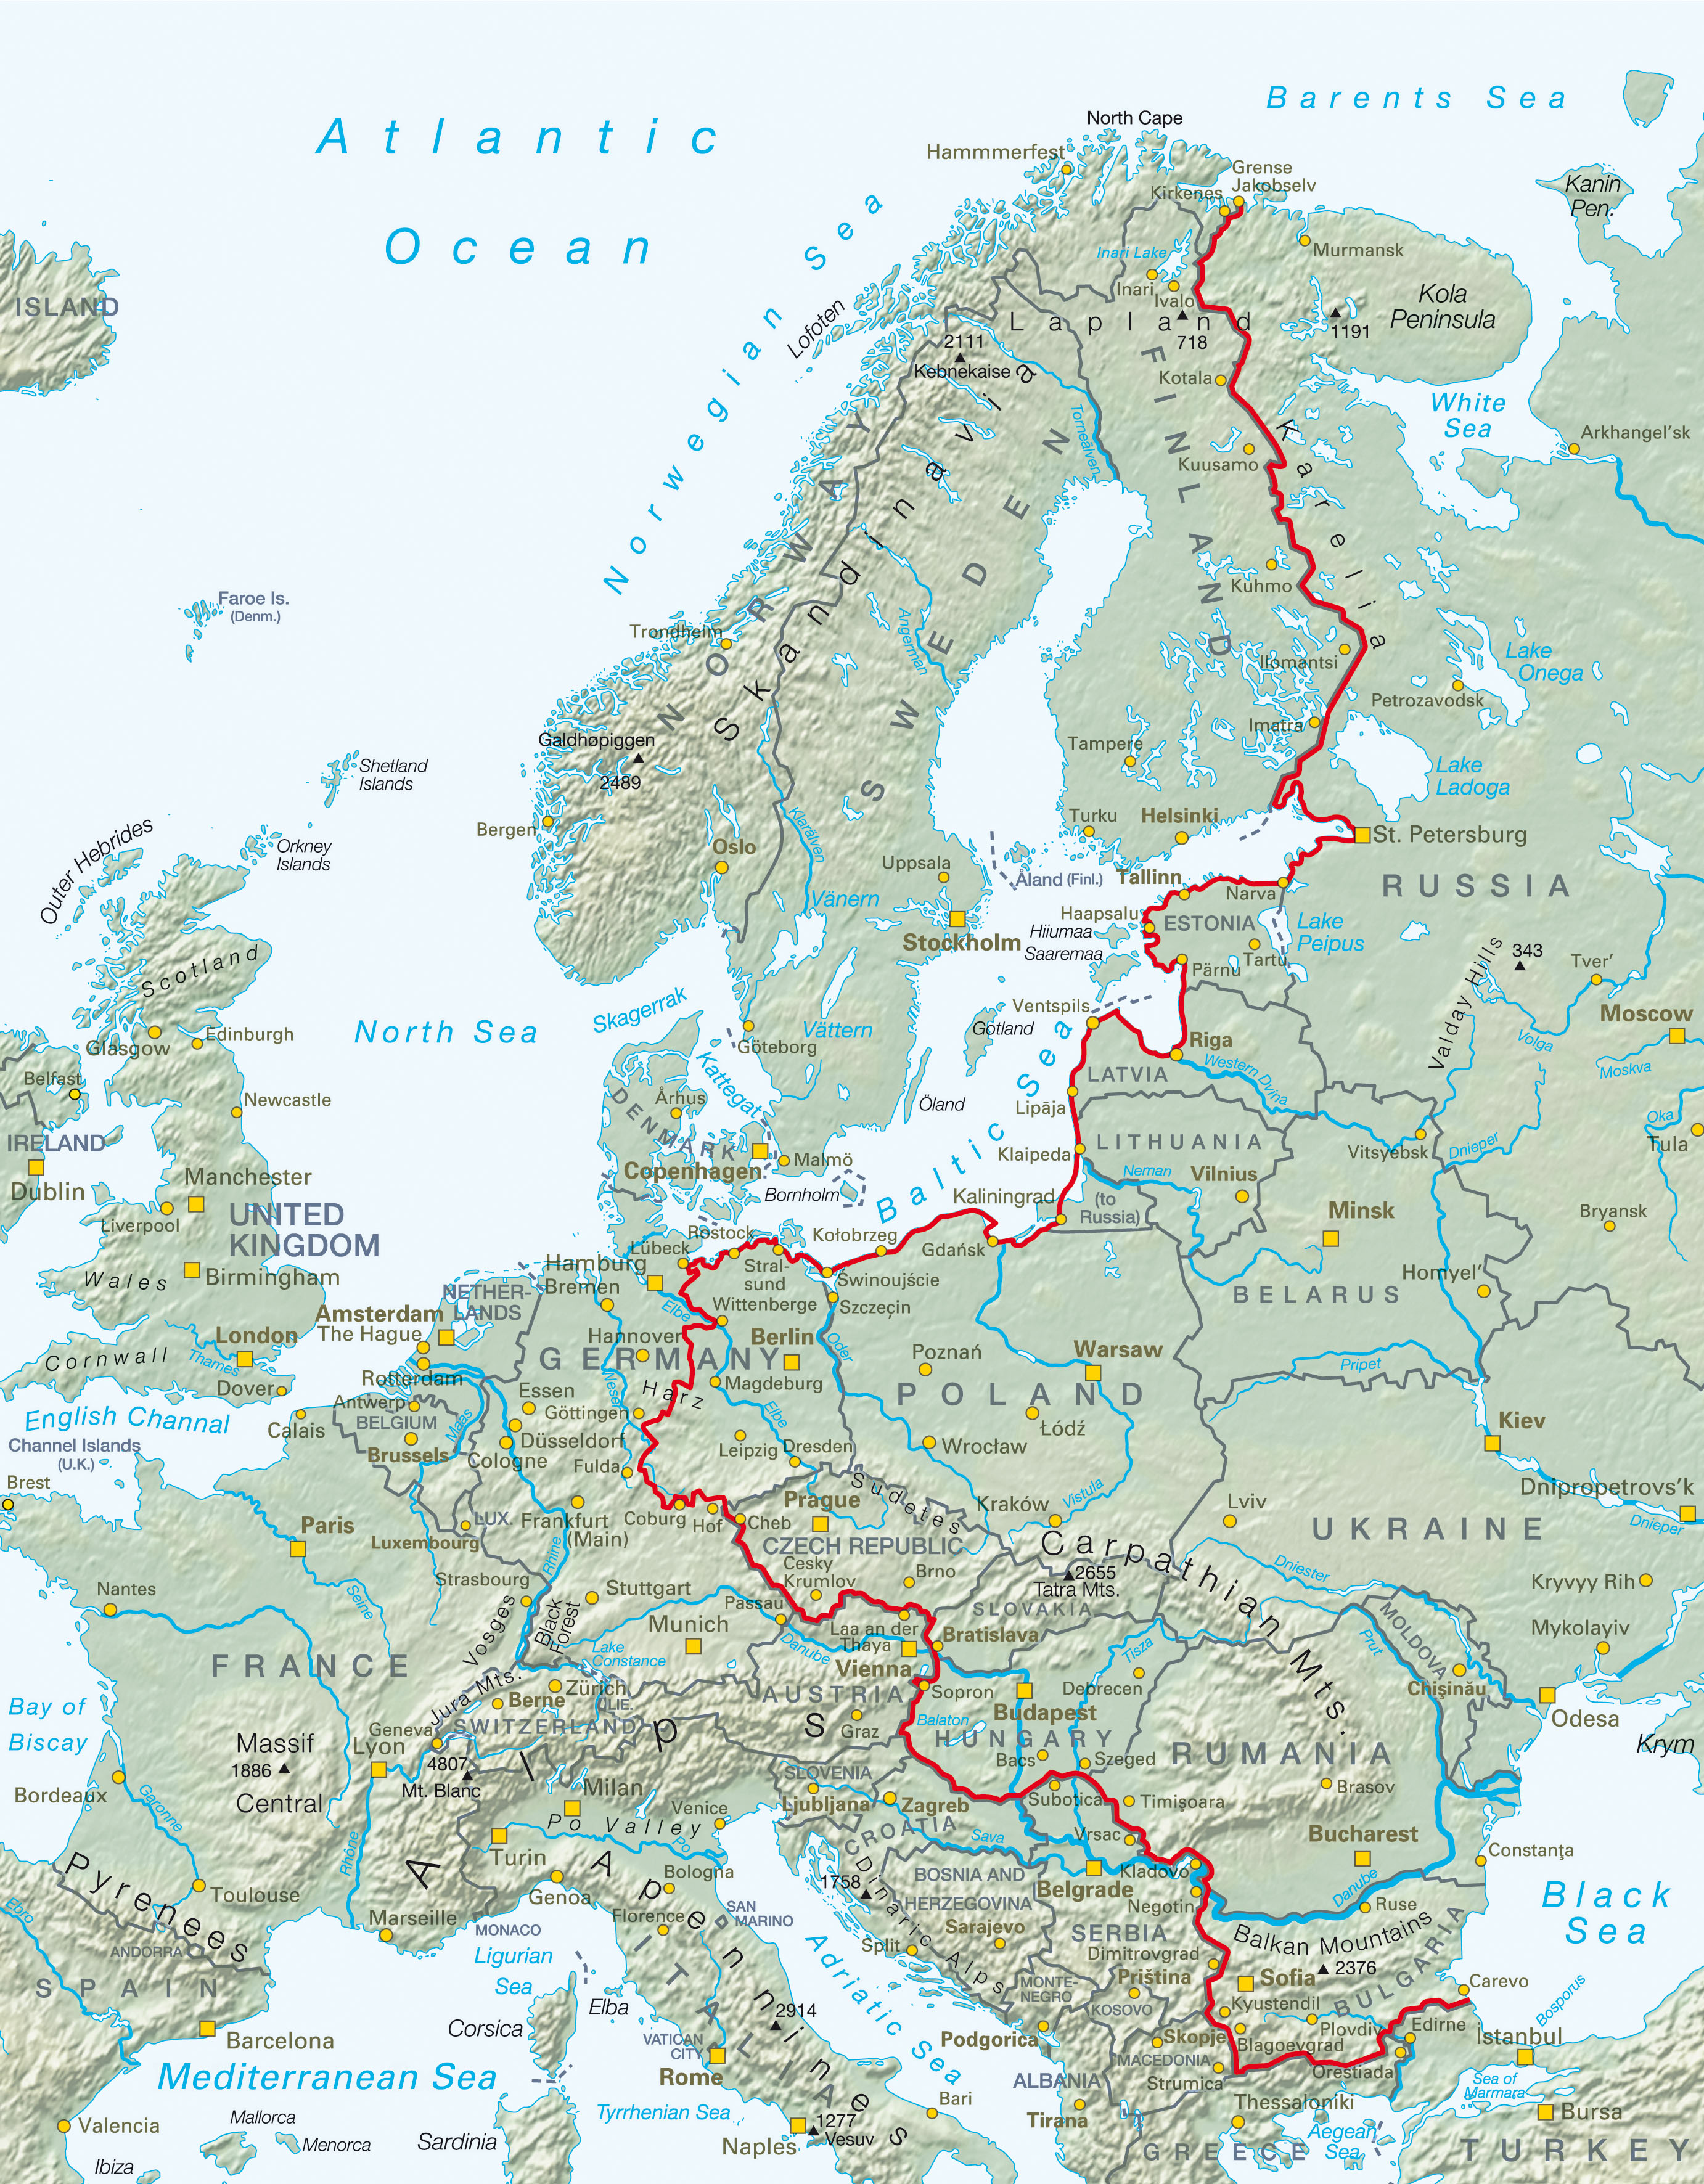 Iron Curtain Bicycle Route Navigating Europe By Bike - Us 36 bike path map